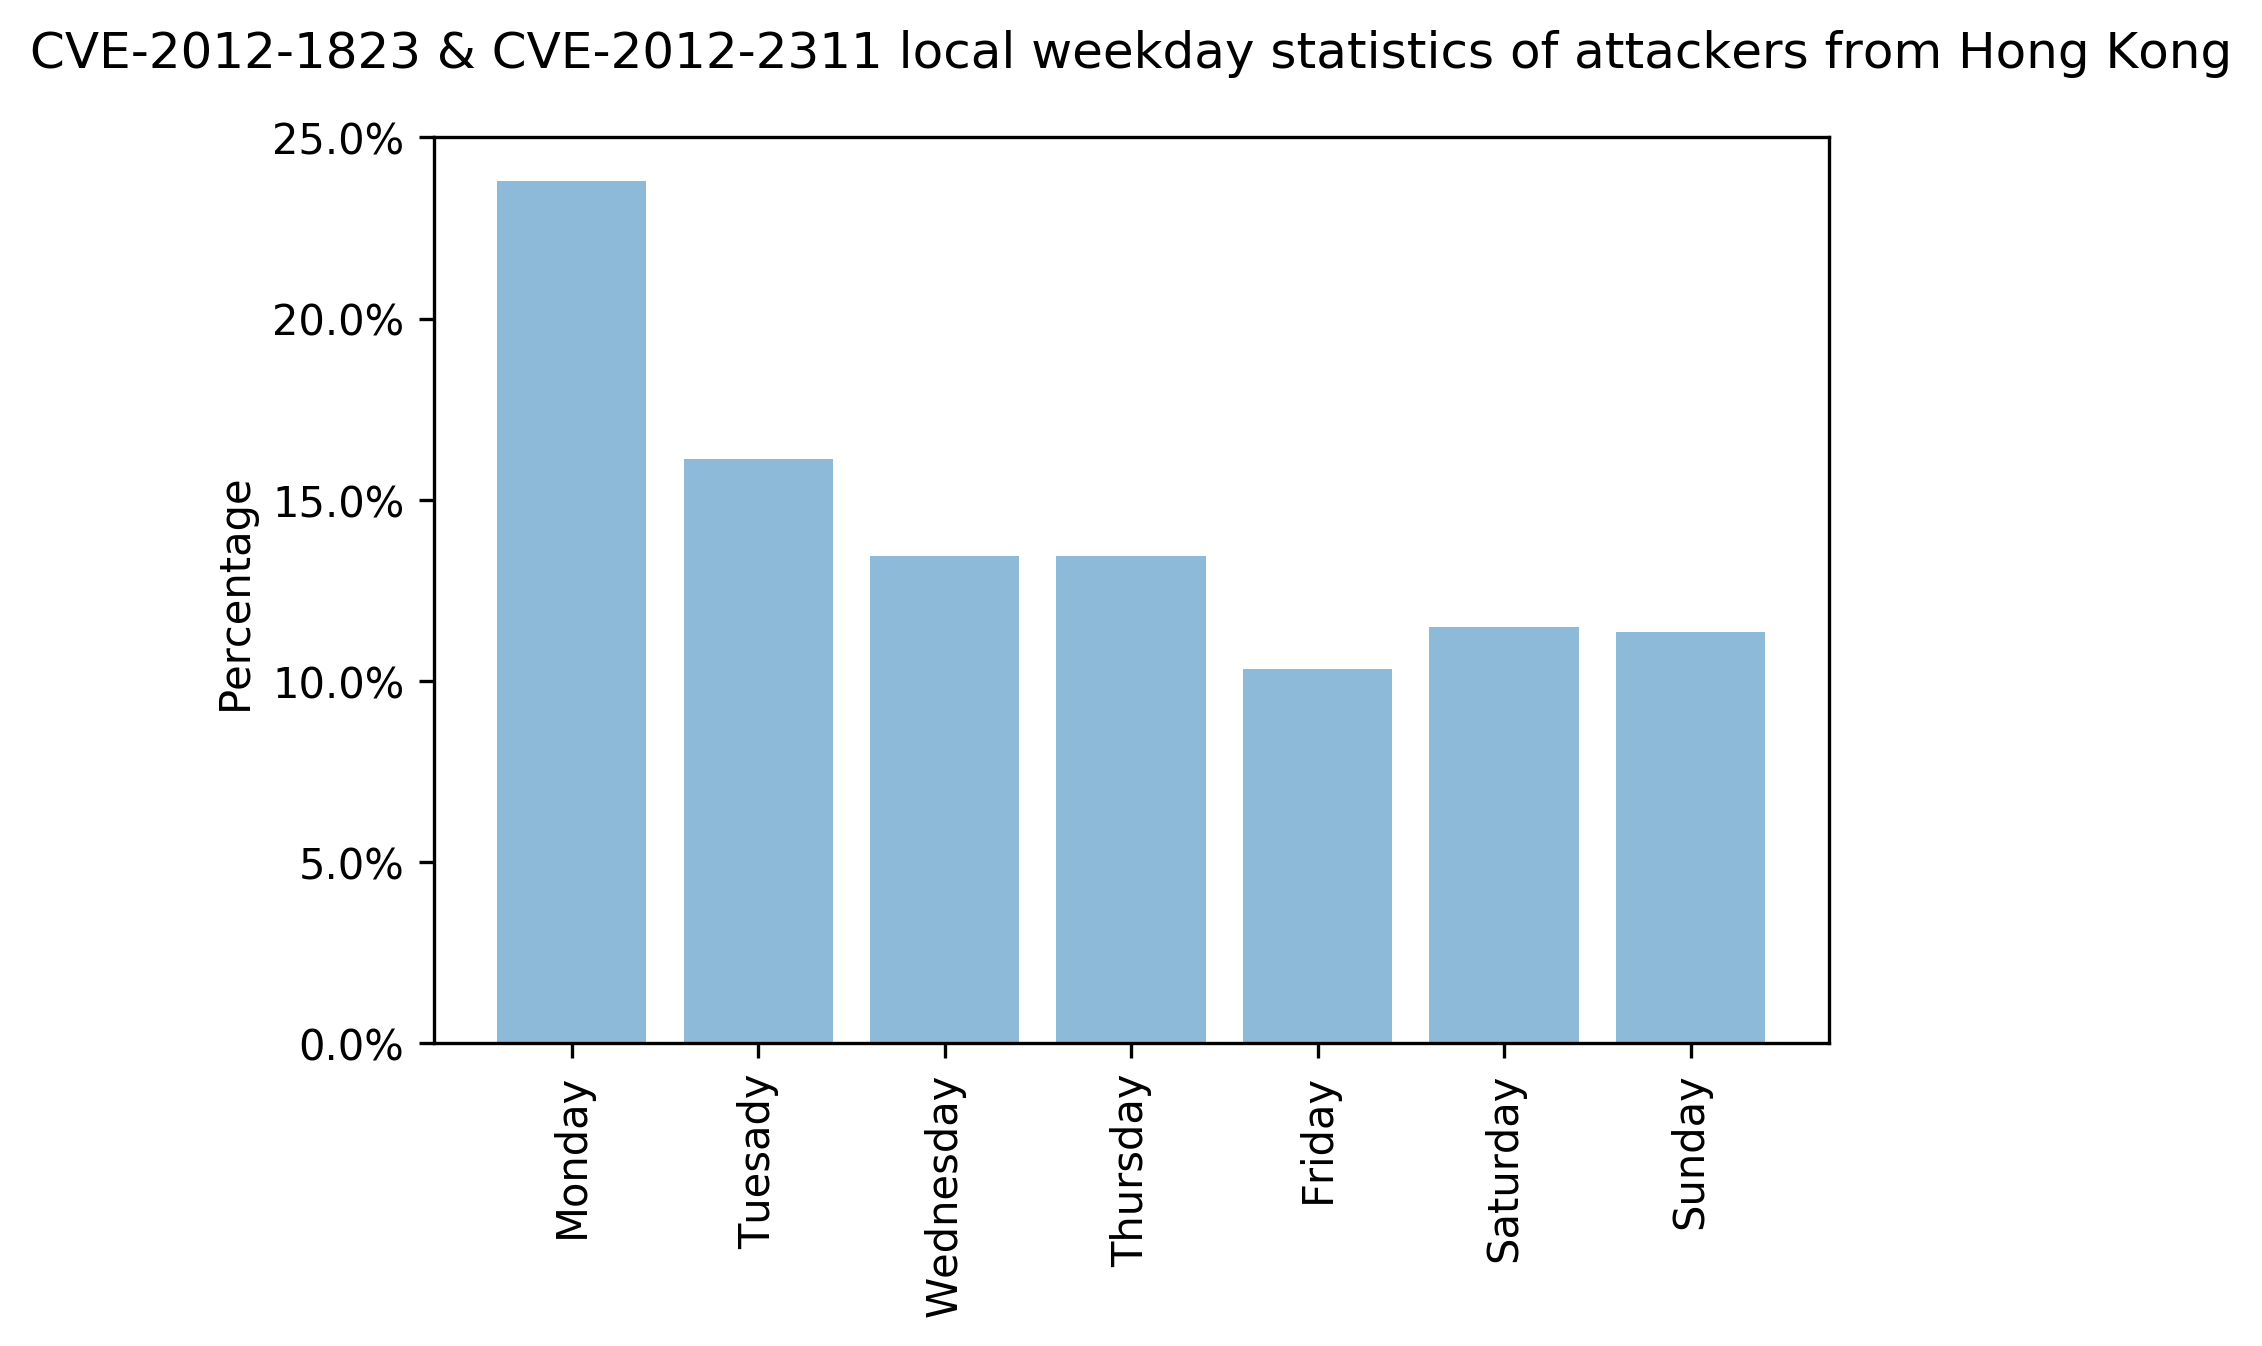 CVE-2012-1823 & CVE-2012-2311 local weekday statistics of attackers from Hong Kong. The X-axis represents days of the week and the Y-axis represents the percentages of attacks observed on those days.